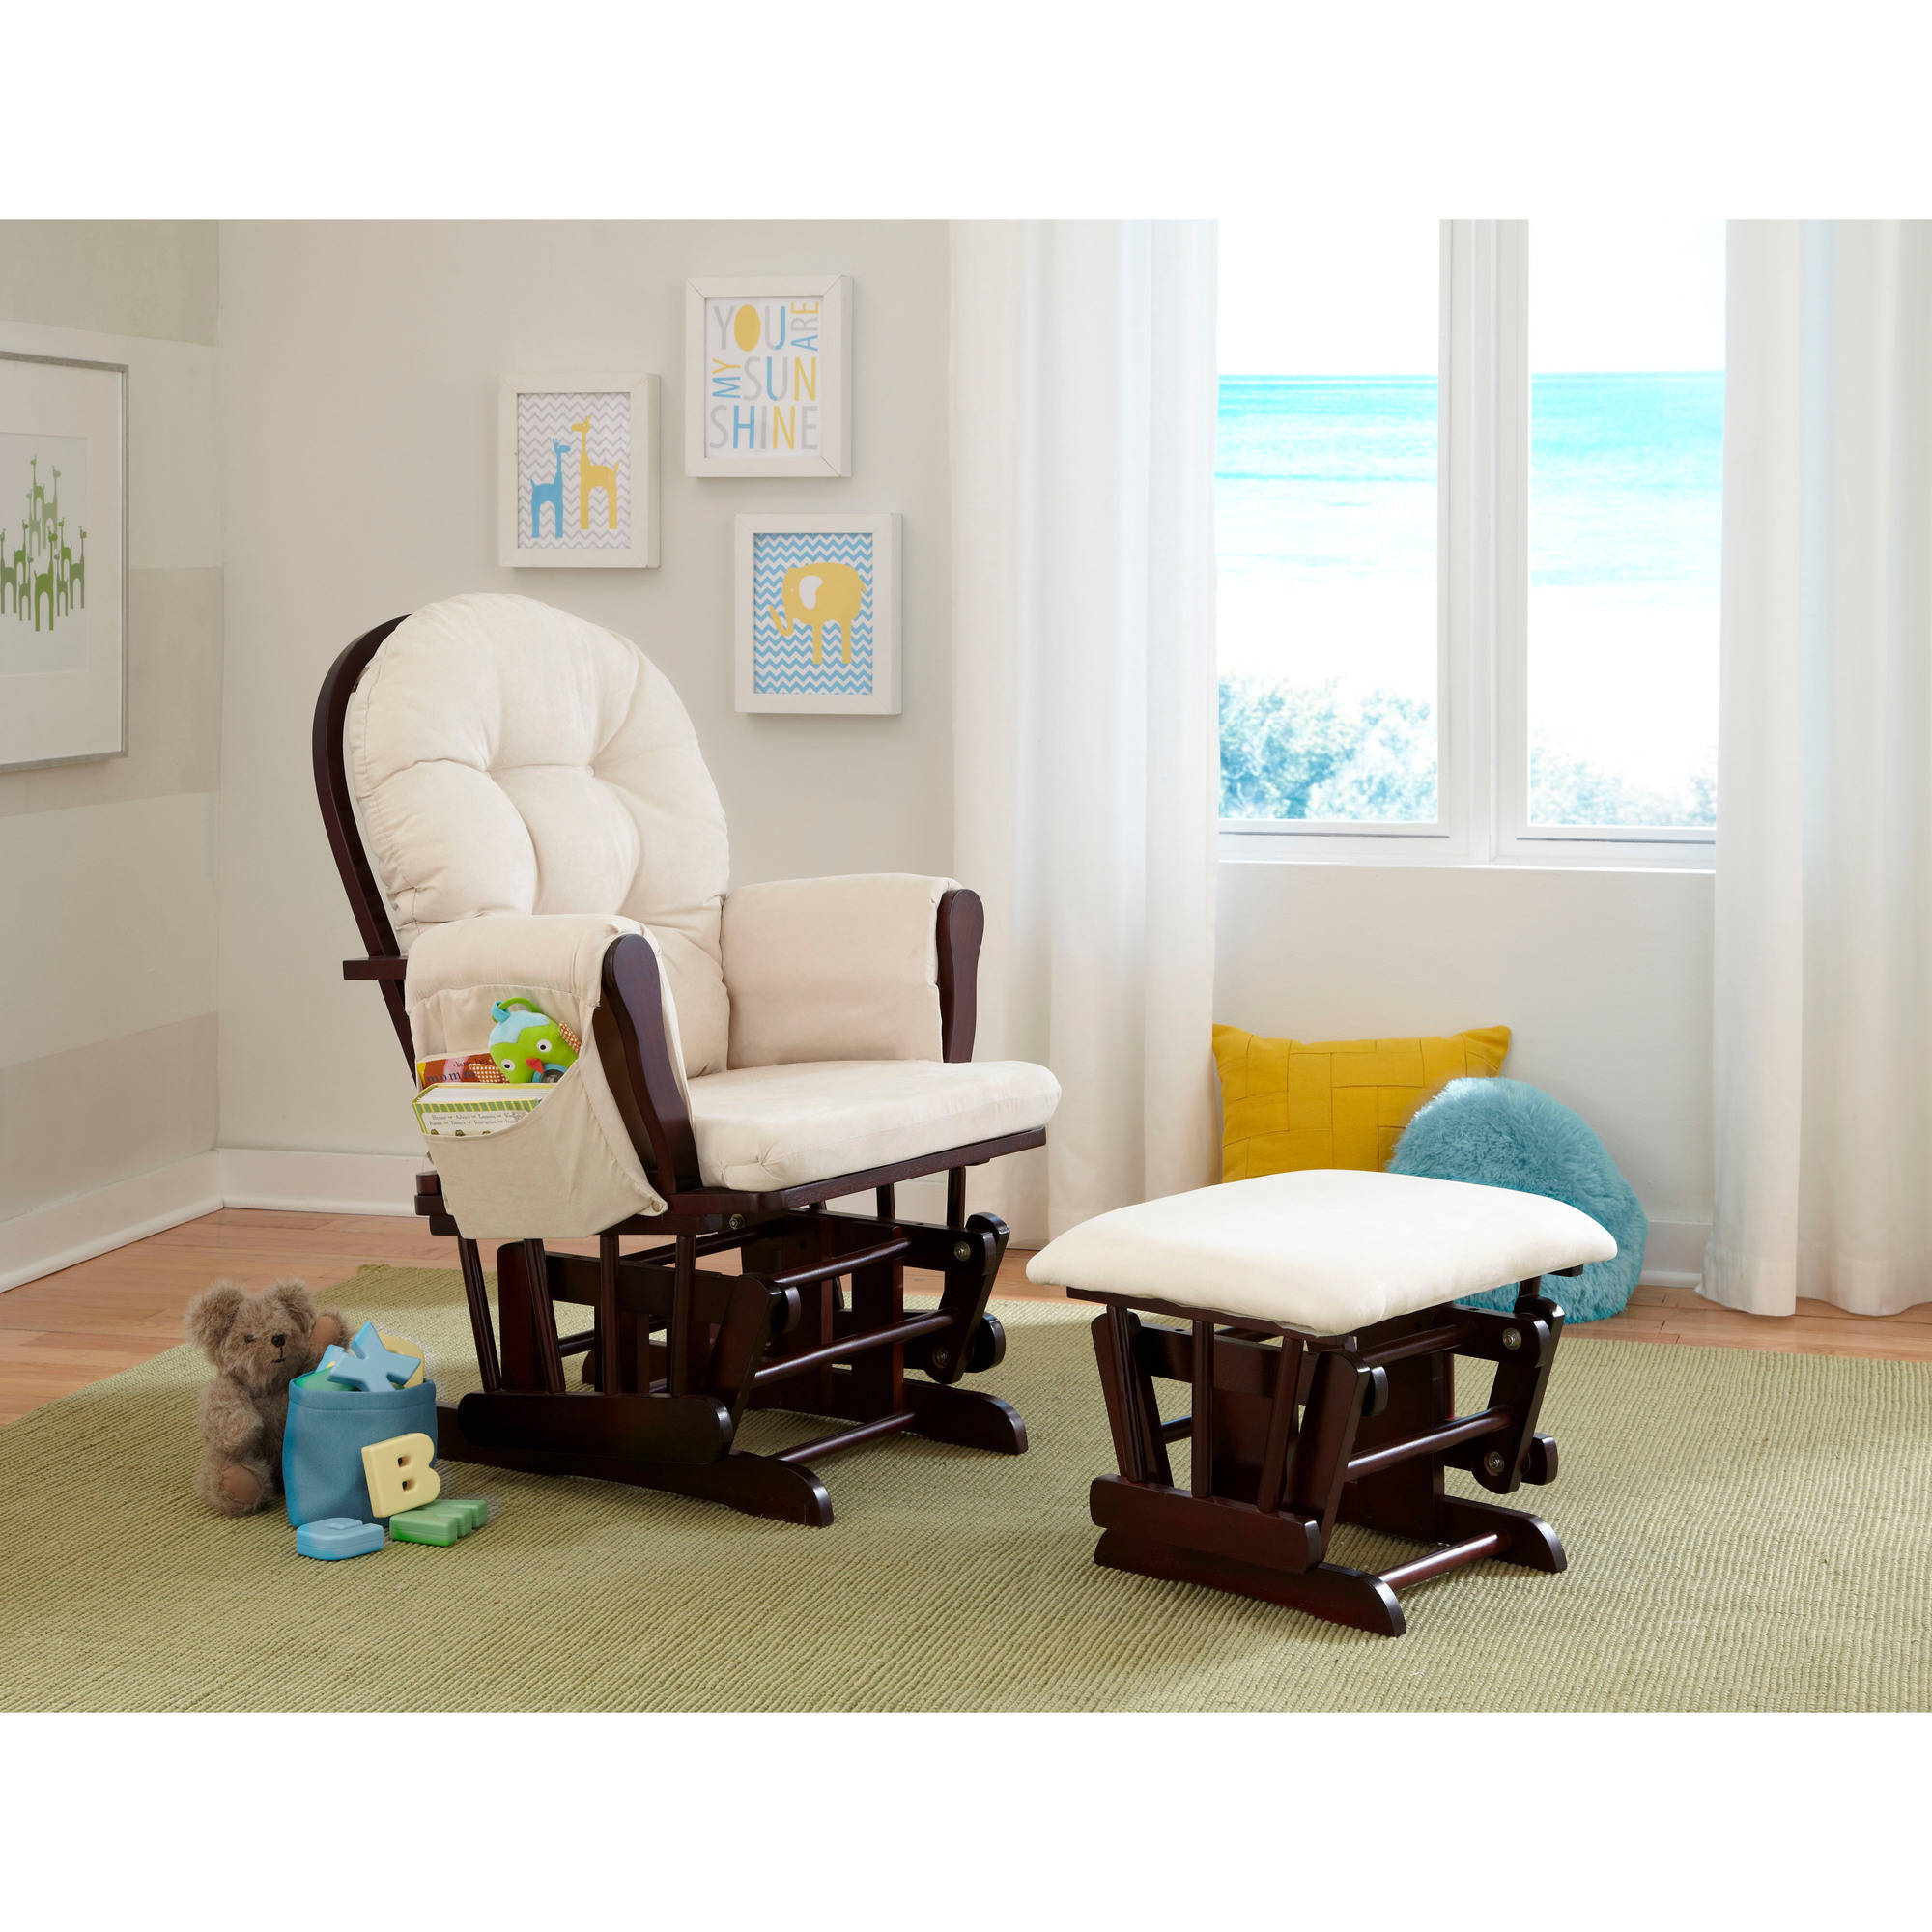 StorkCraft Malibu Glider and Ottoman Set, Dark Brown